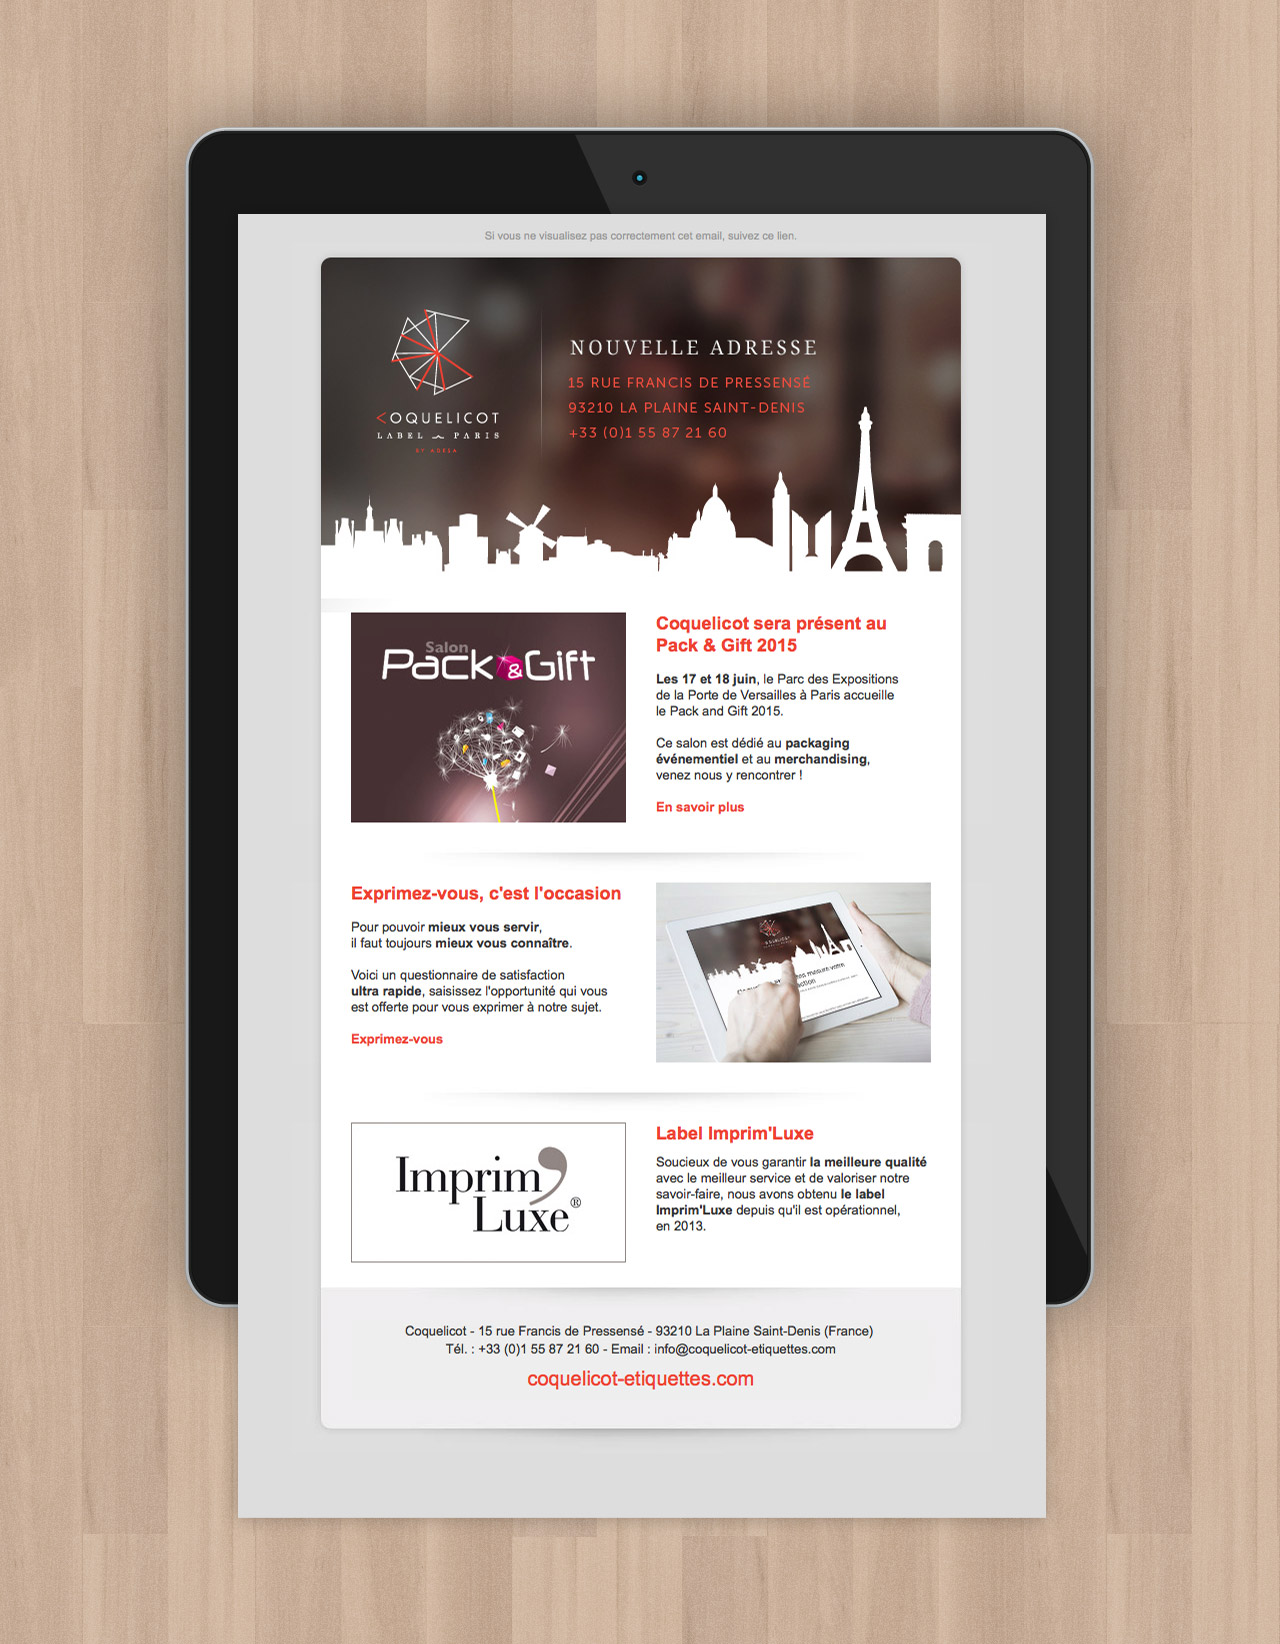 coquelicot-newsletter-mailing-3-design-creation-communication-caconcept-alexis-cretin-graphiste